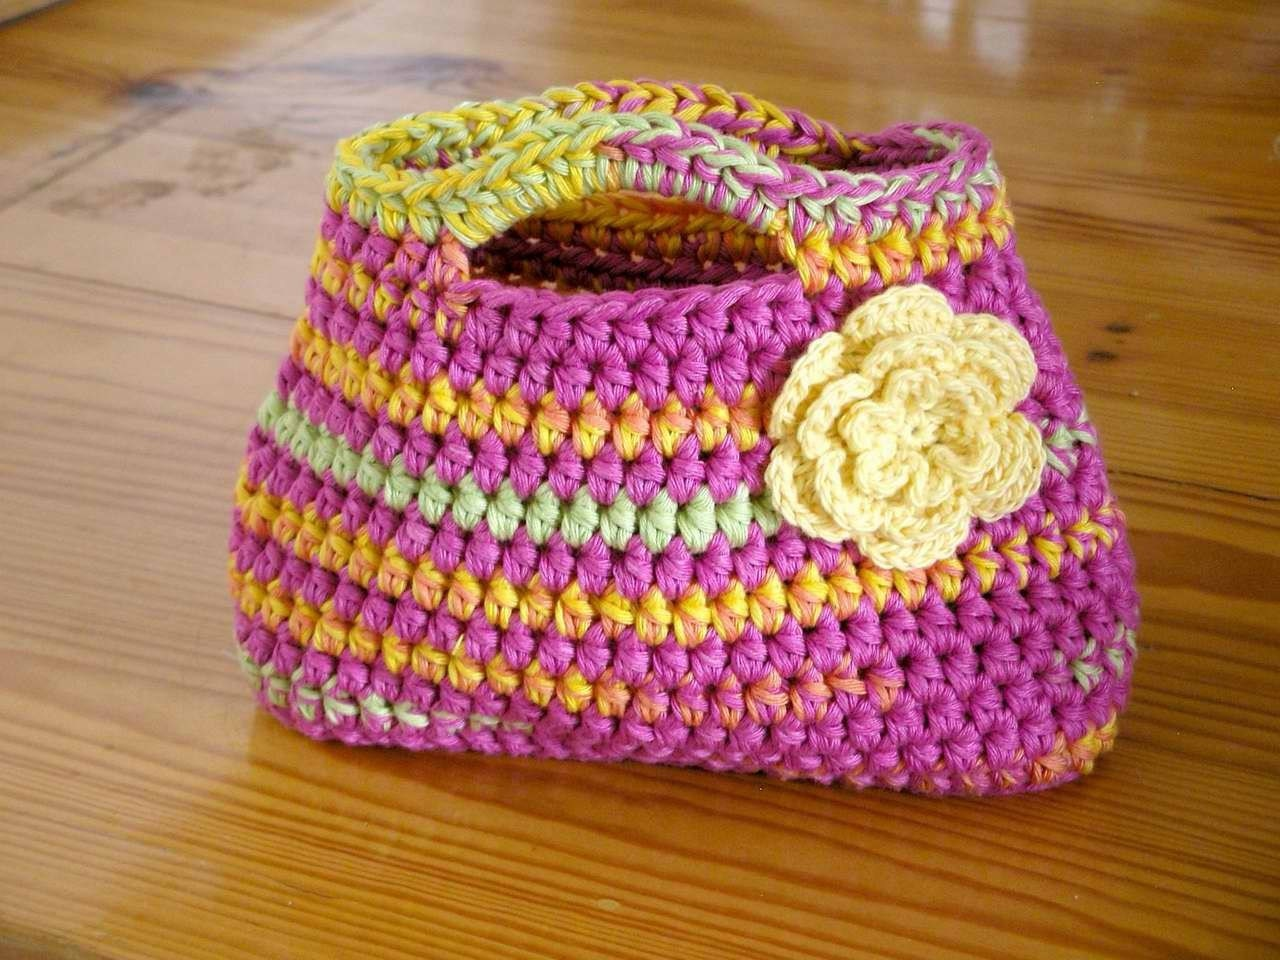 Crochet Purse Patterns Free Easy : Easy Peasy Little Kidz Bag Crochet PATTERN by bubnutPatterns